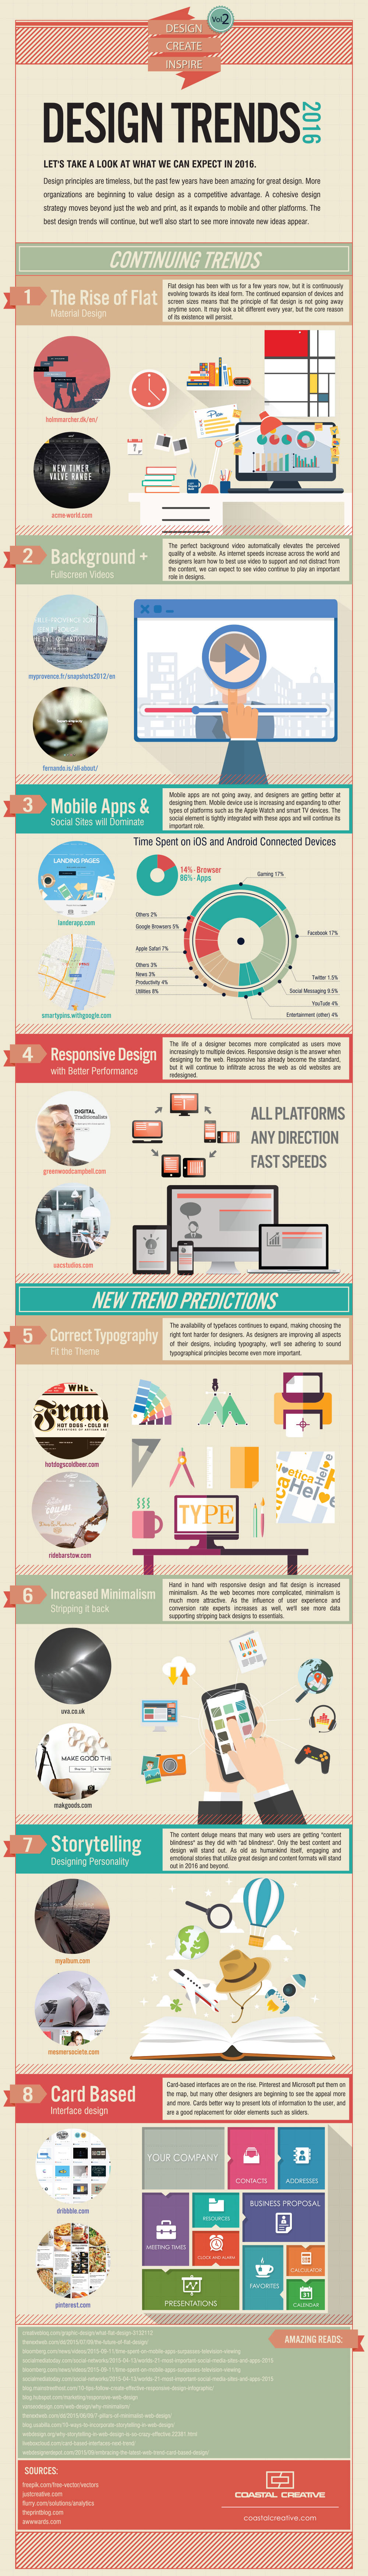 20151215020339-design-trends-infographic.jpeg